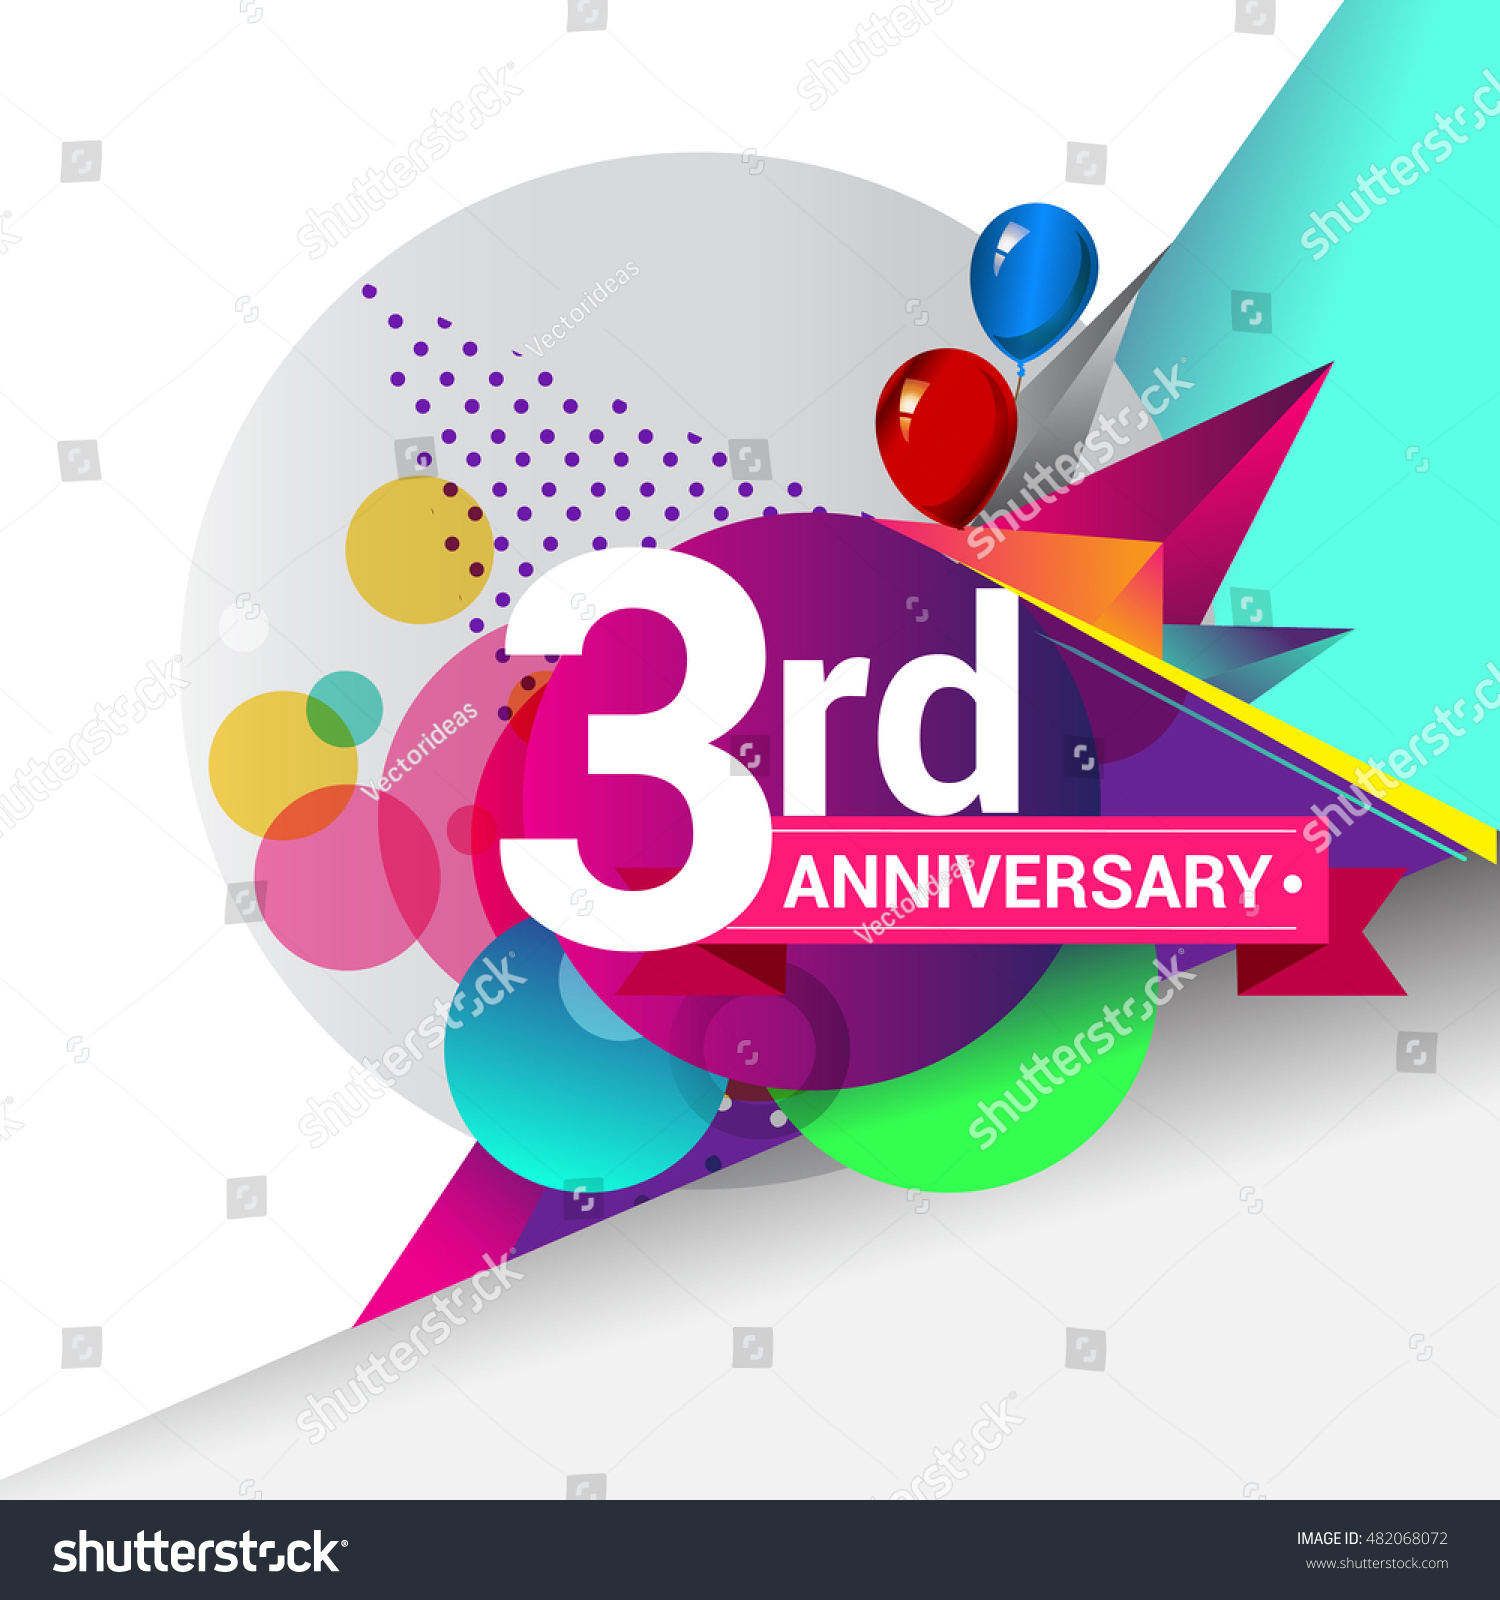 3rd Anniversary Logo Colorful Geometric Background Stock